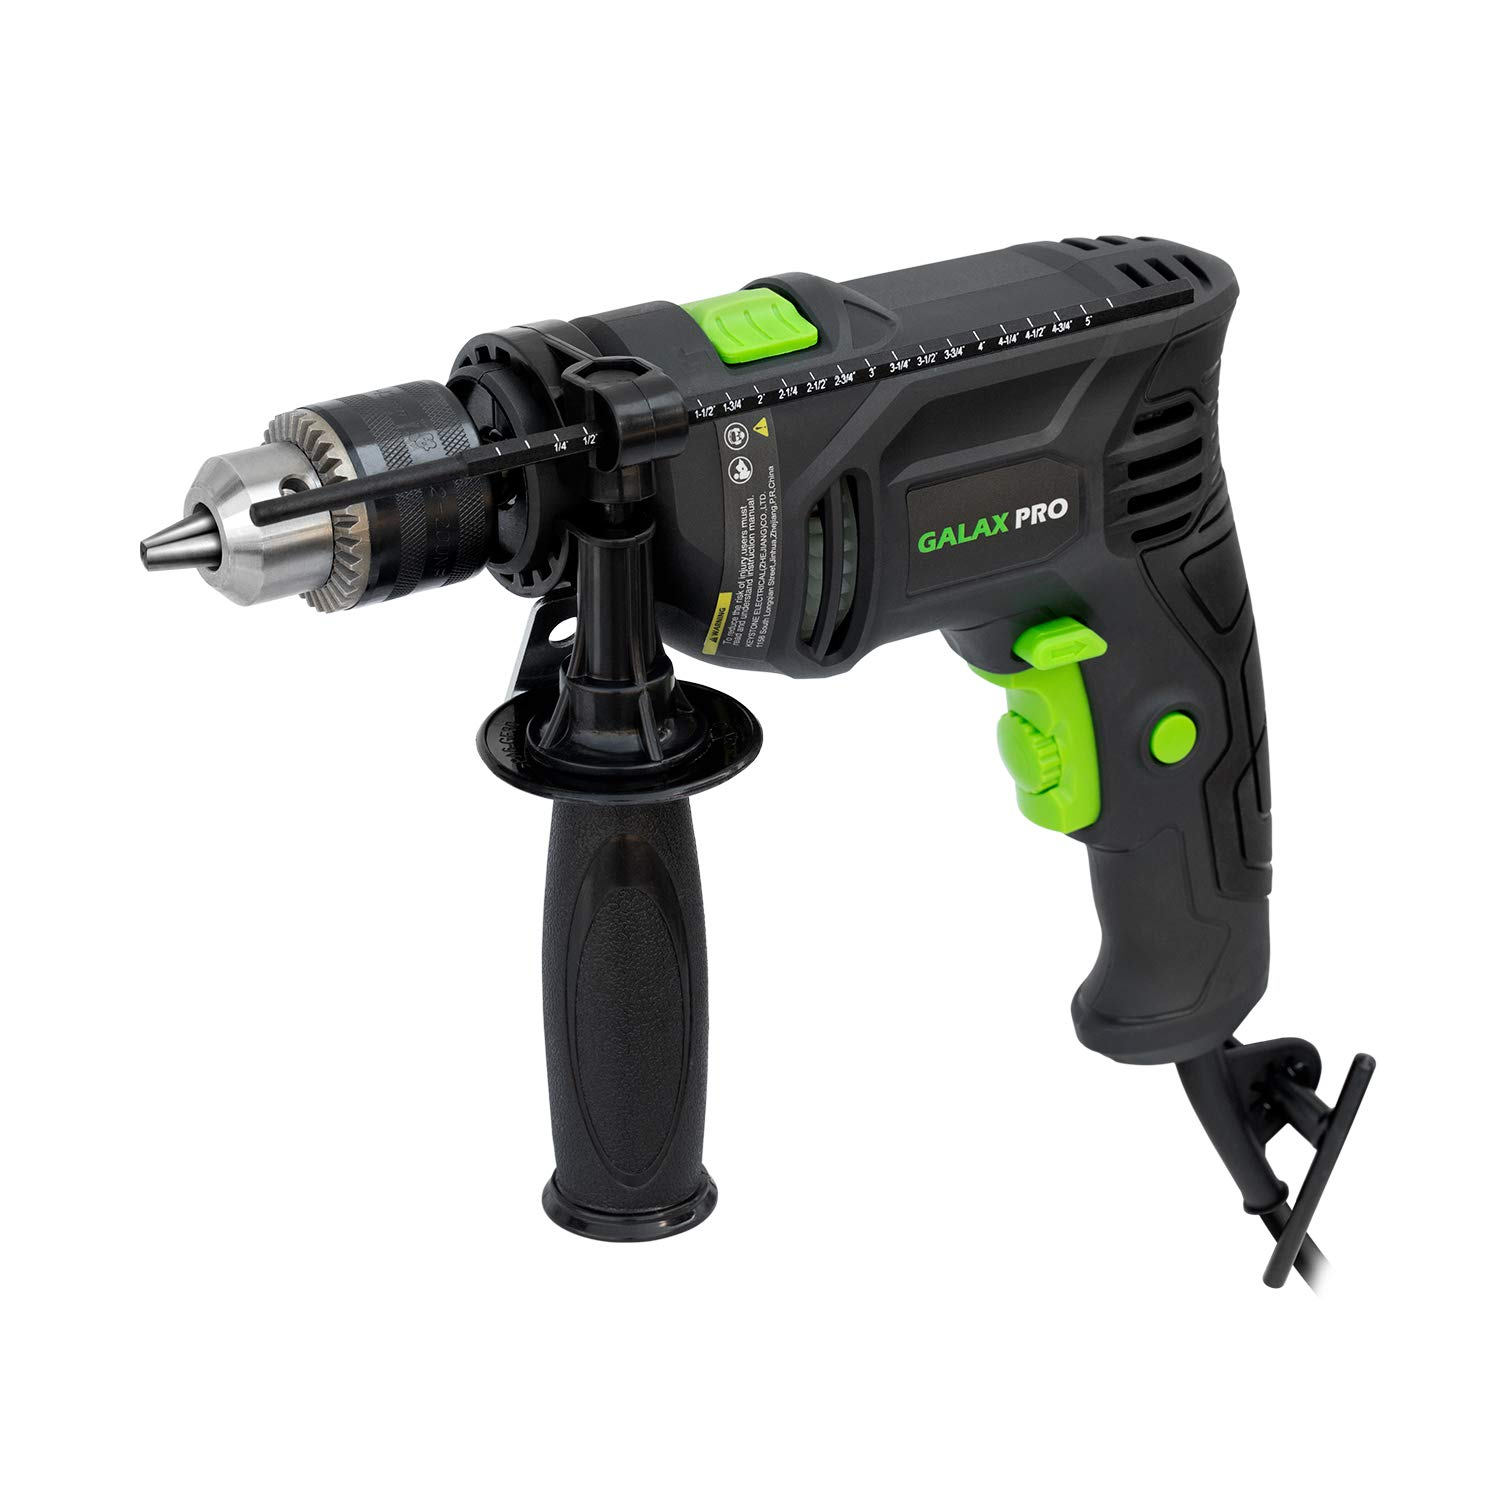 GALAX PRO Hammer Drill, 5Amp Electic Corded Drill, 1/2'' Metal Chuck, 0-3000RPM, Powerful Variable Speed Drill for Drilling in Steel, Concrete, and Steel